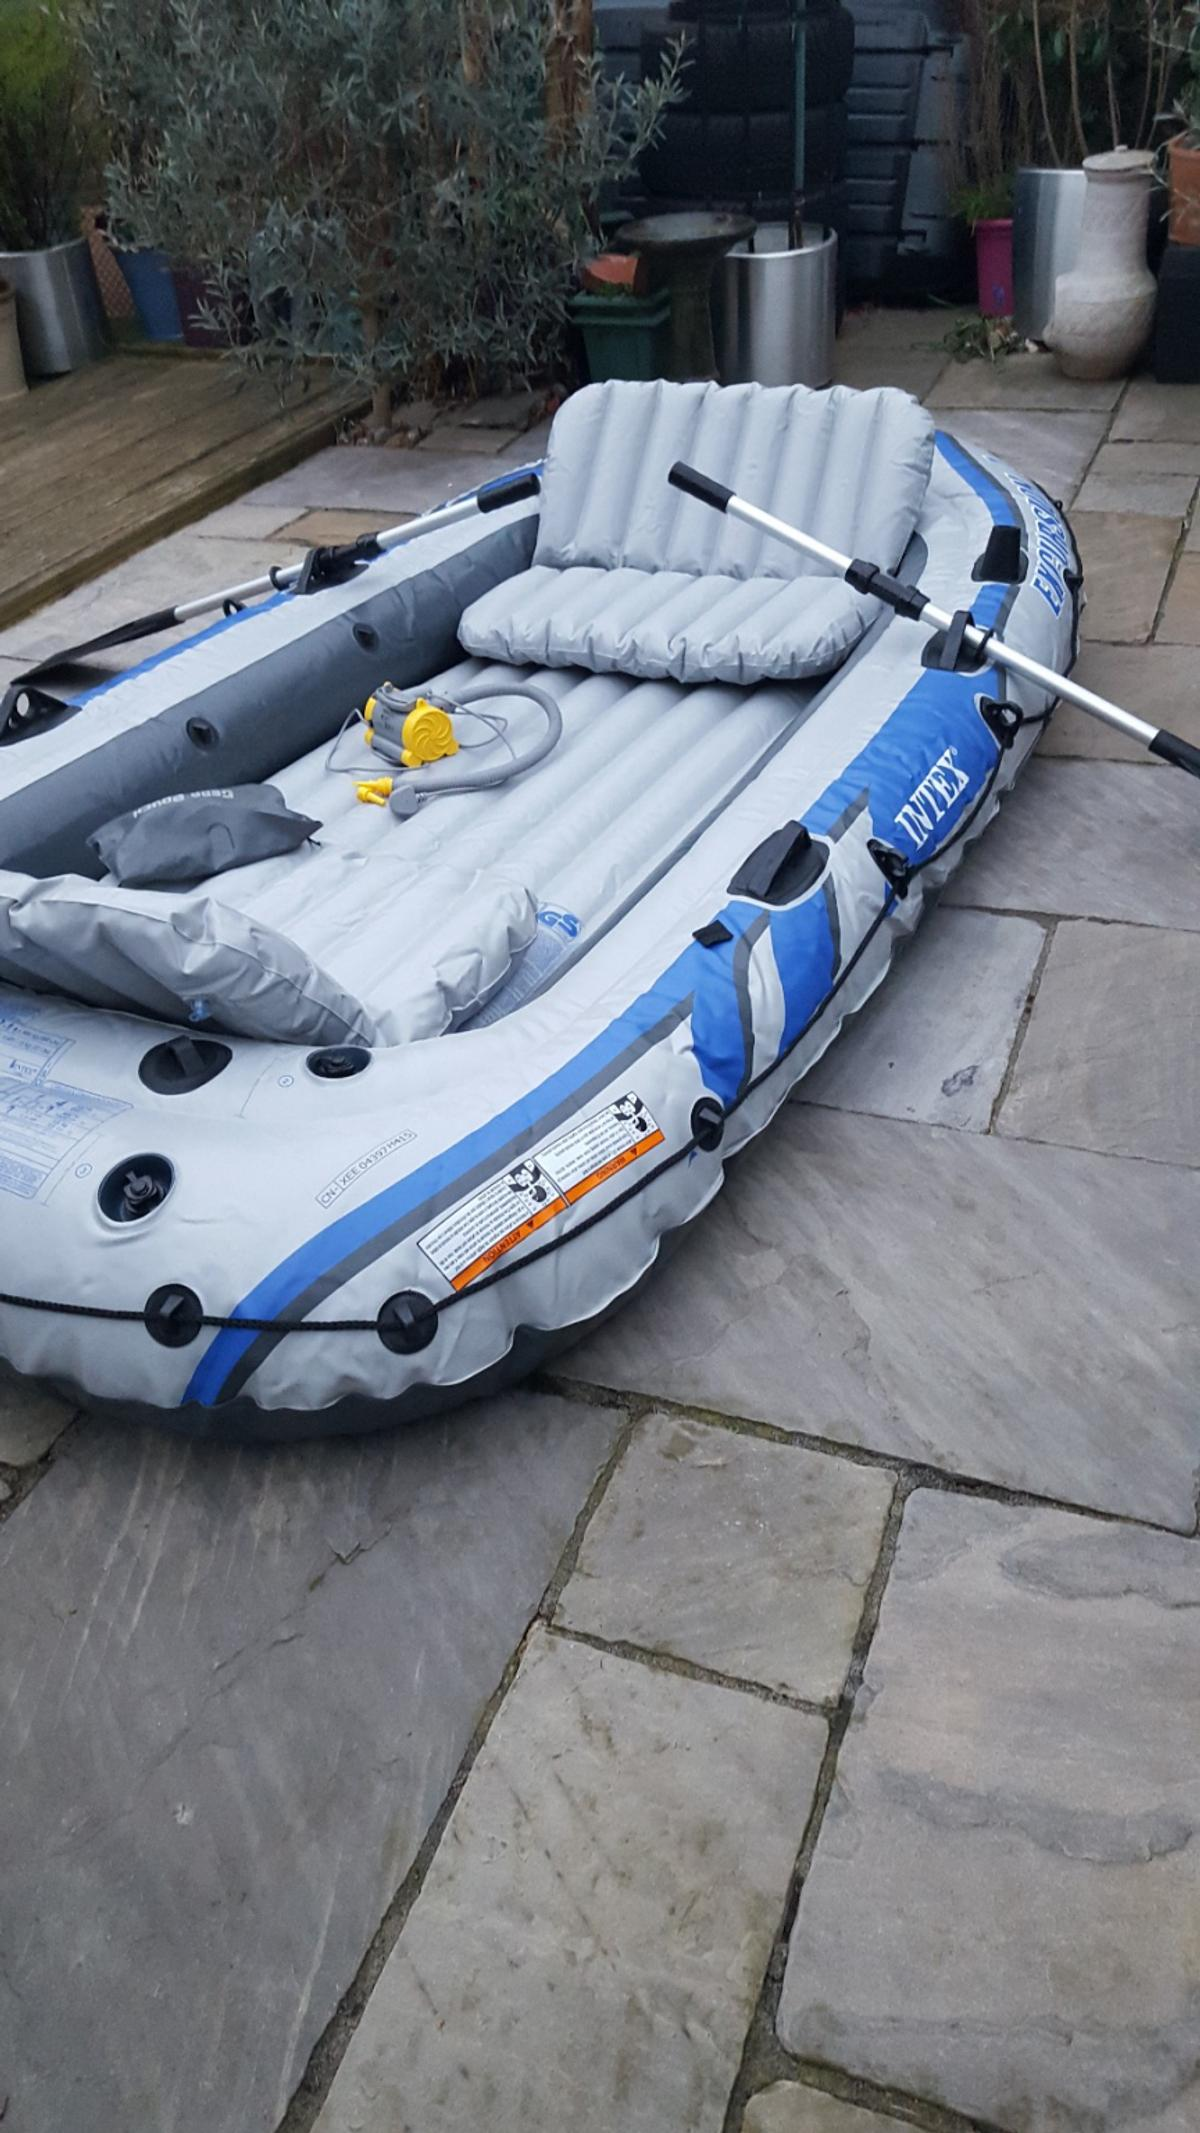 intex excursion 4 inflatable boat in SS14 Basildon for